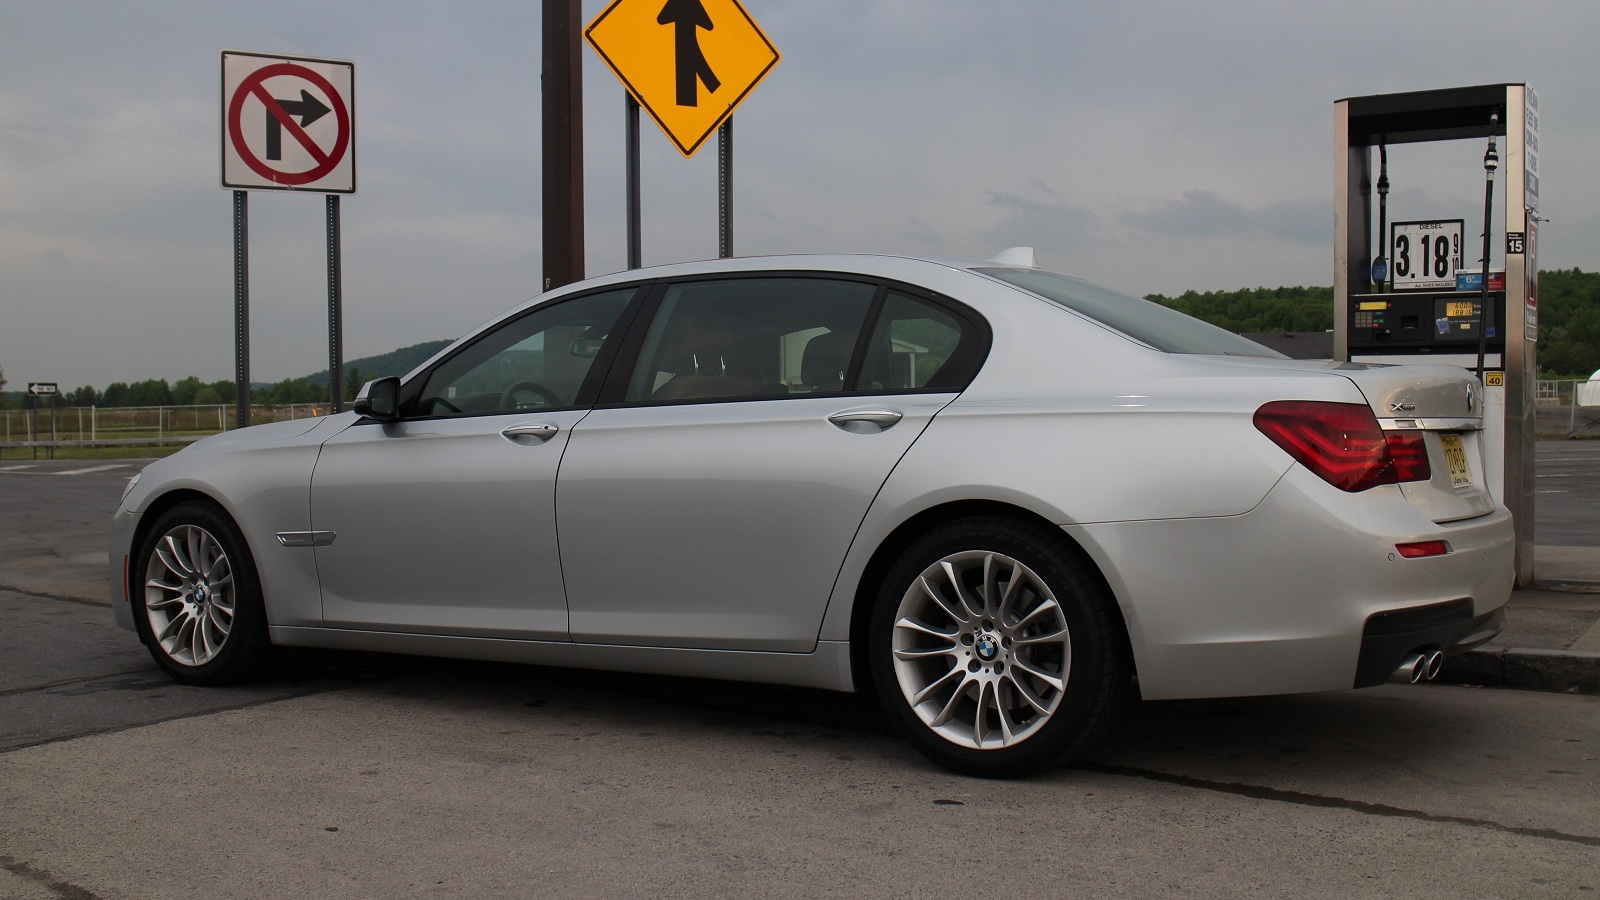 2015 BMW 740Ld xDrive, upstate New York, May 2015